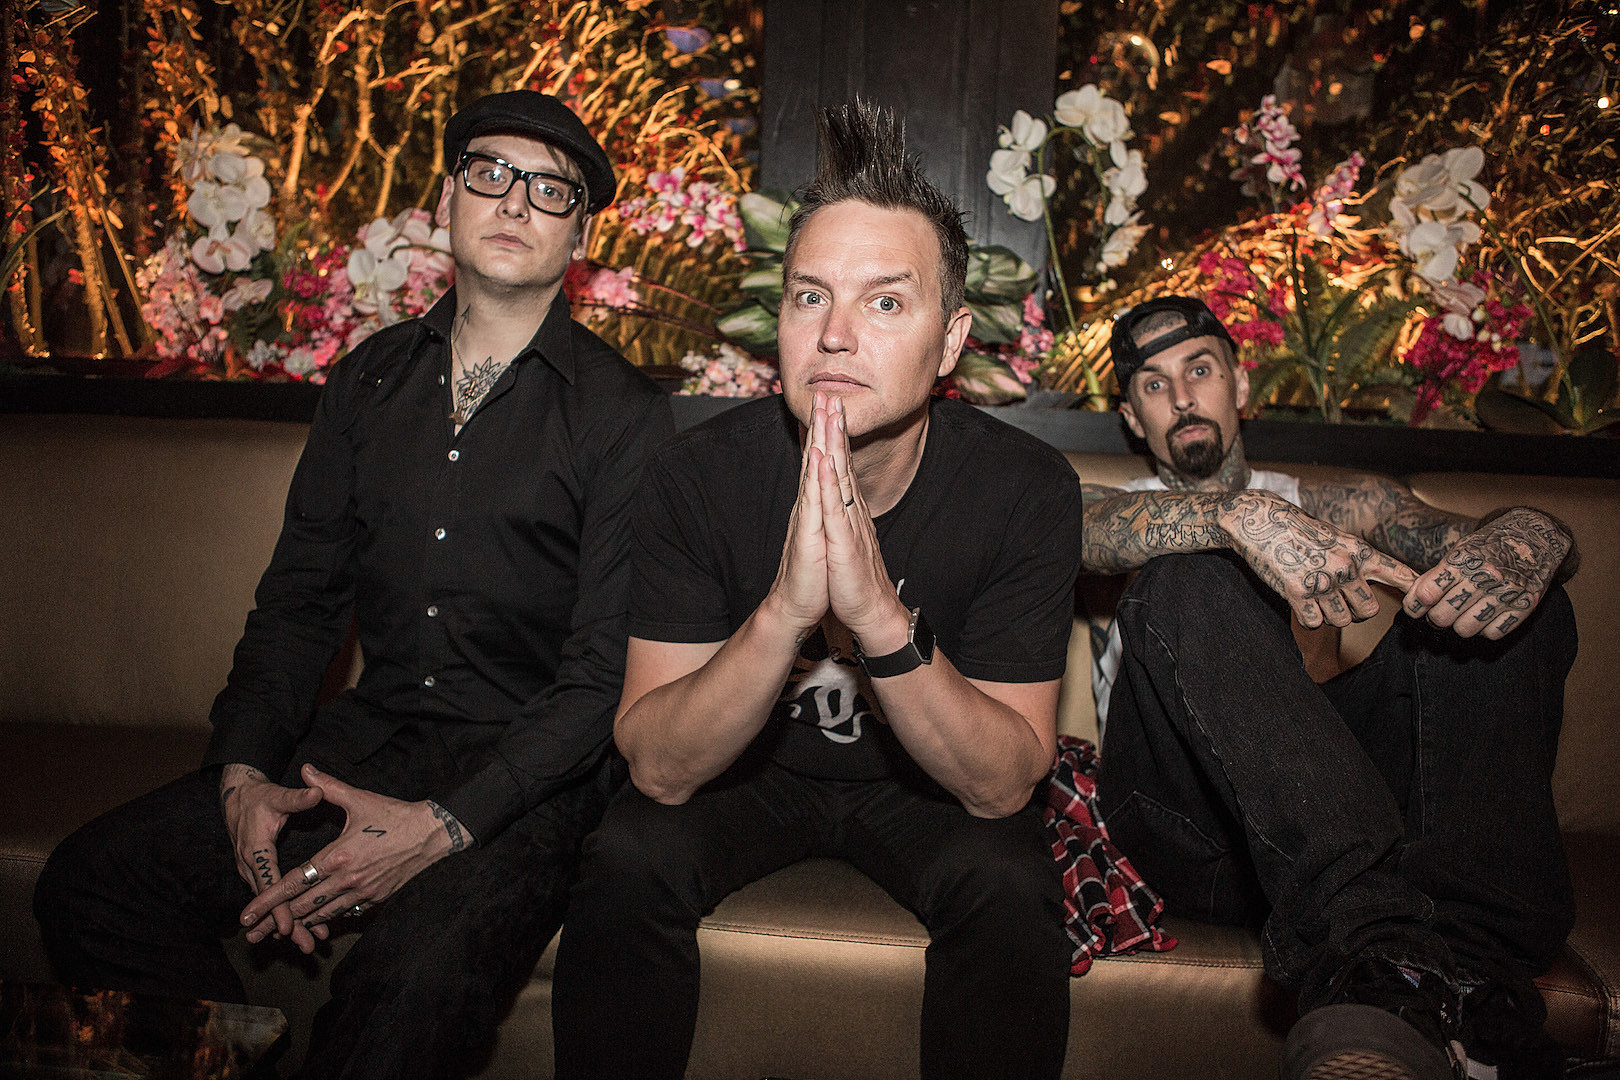 Blink-182 Considered Doing a Side Projects Tour With +44, Angels & Airwaves, Transplants